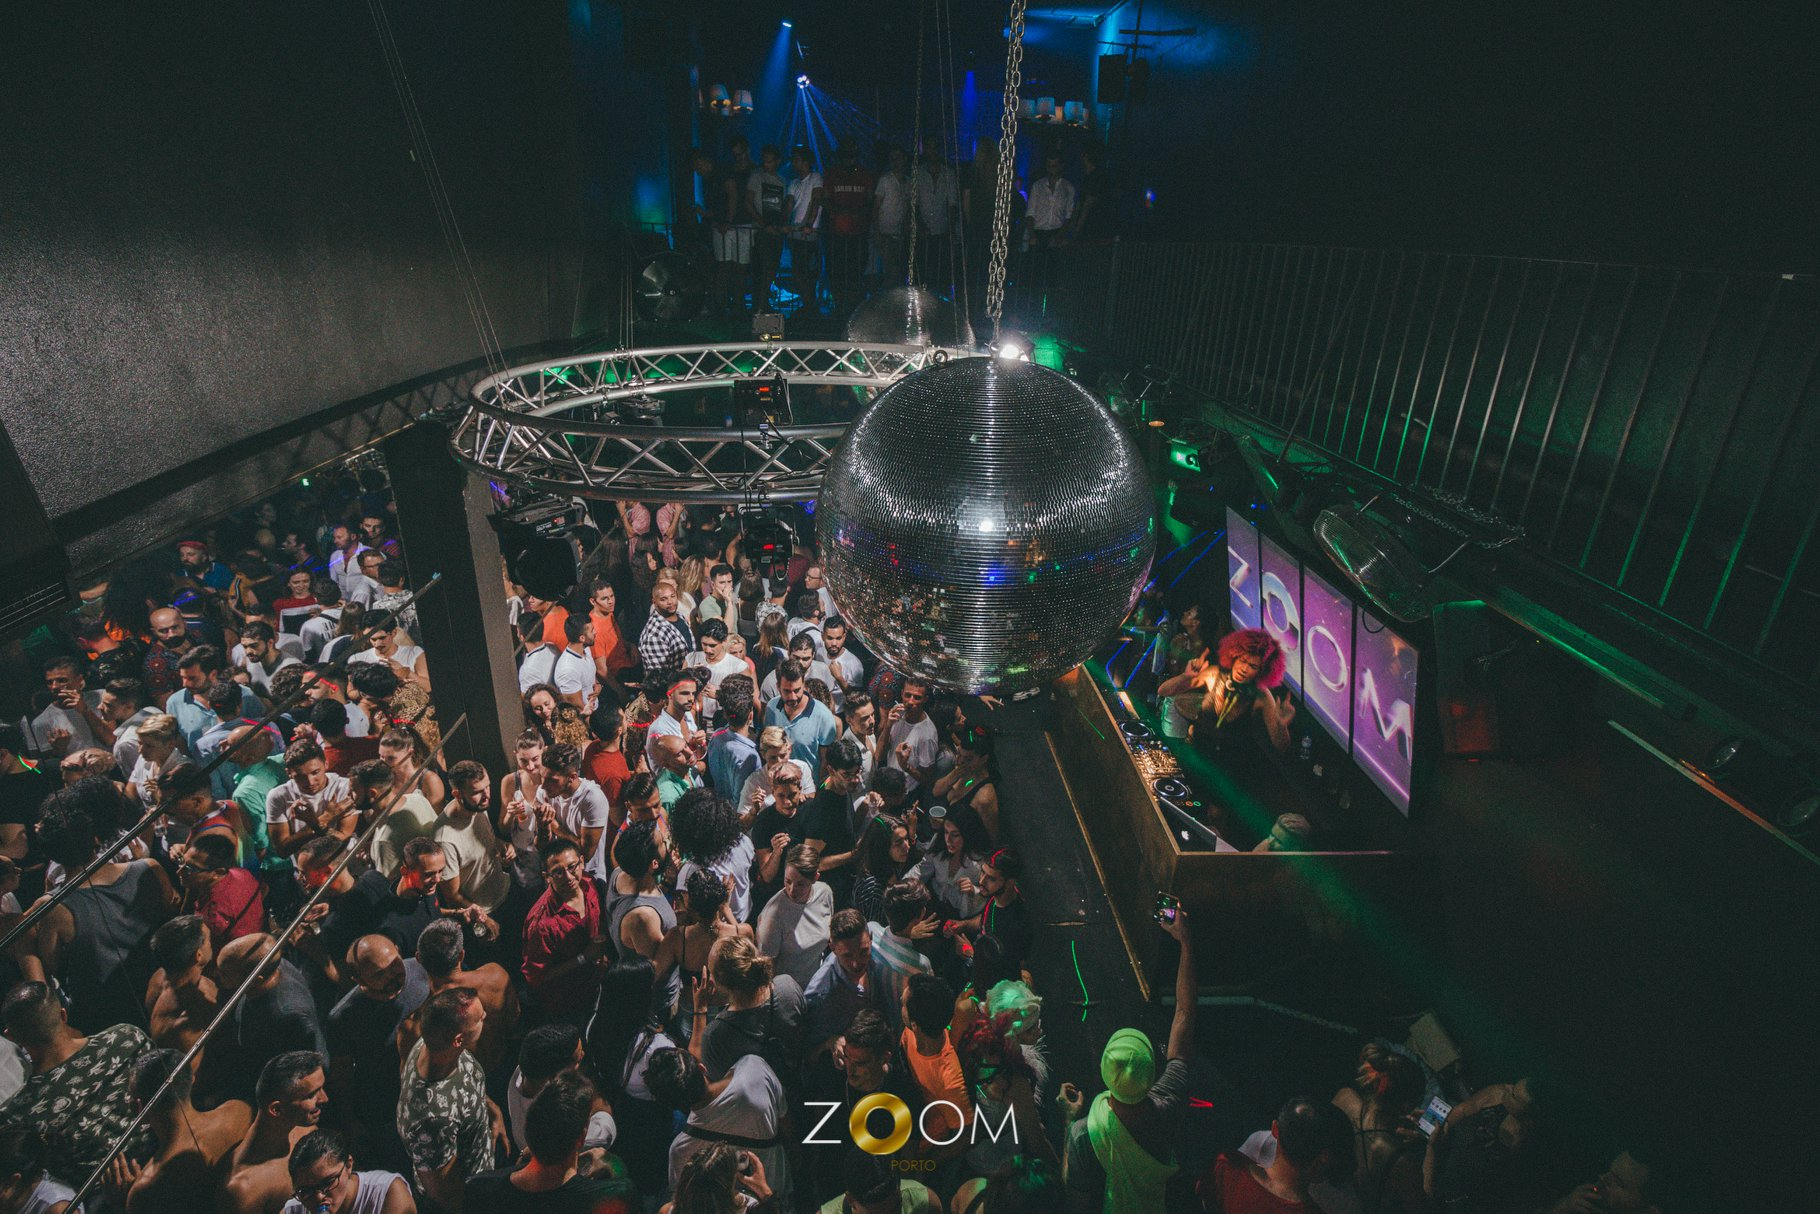 Crowd of people dancing at Zoom Club, Porto, Portugal